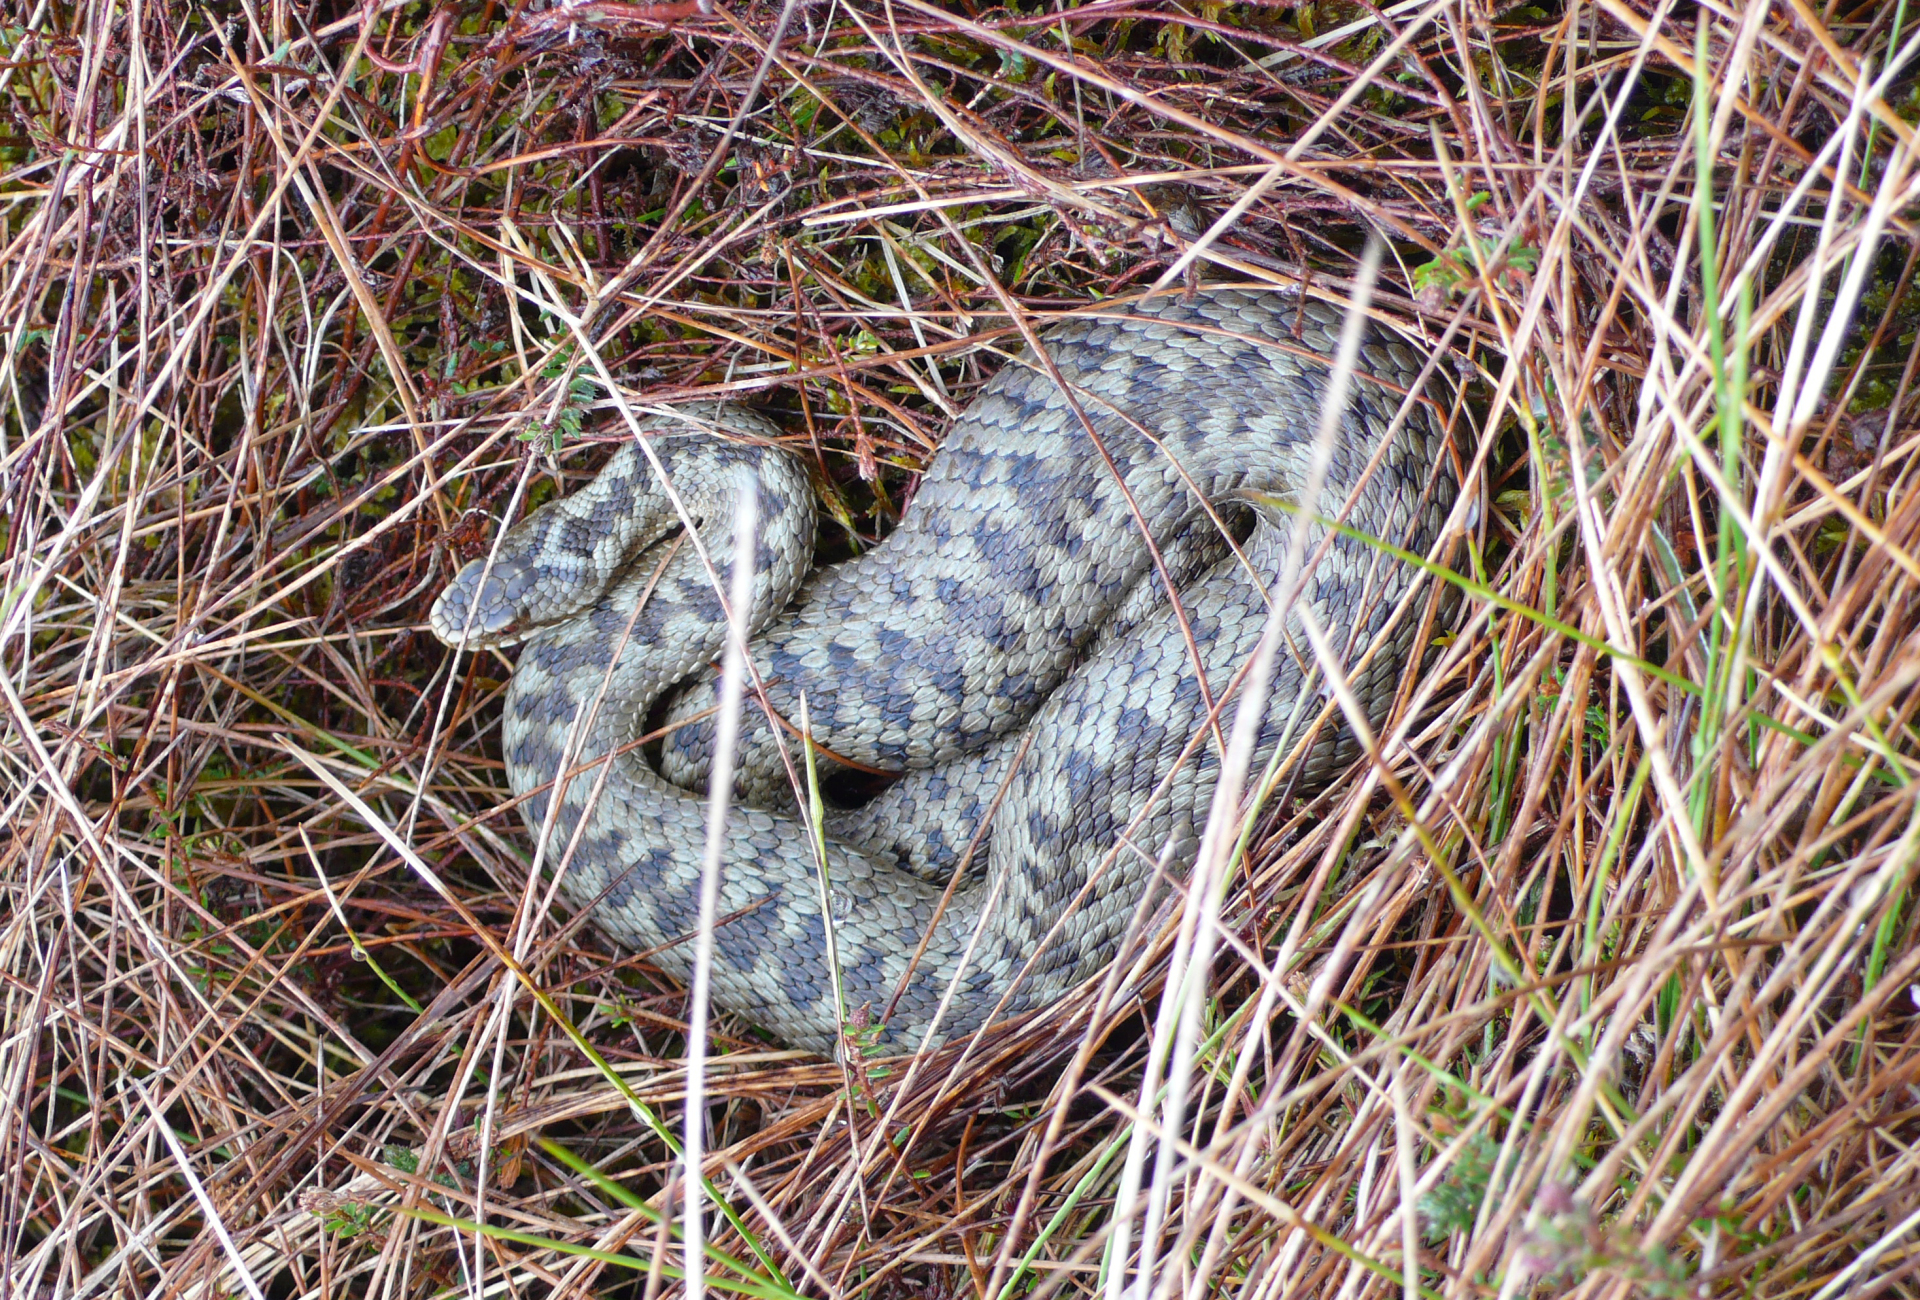 Adder at Glenlude - Karen Purvis